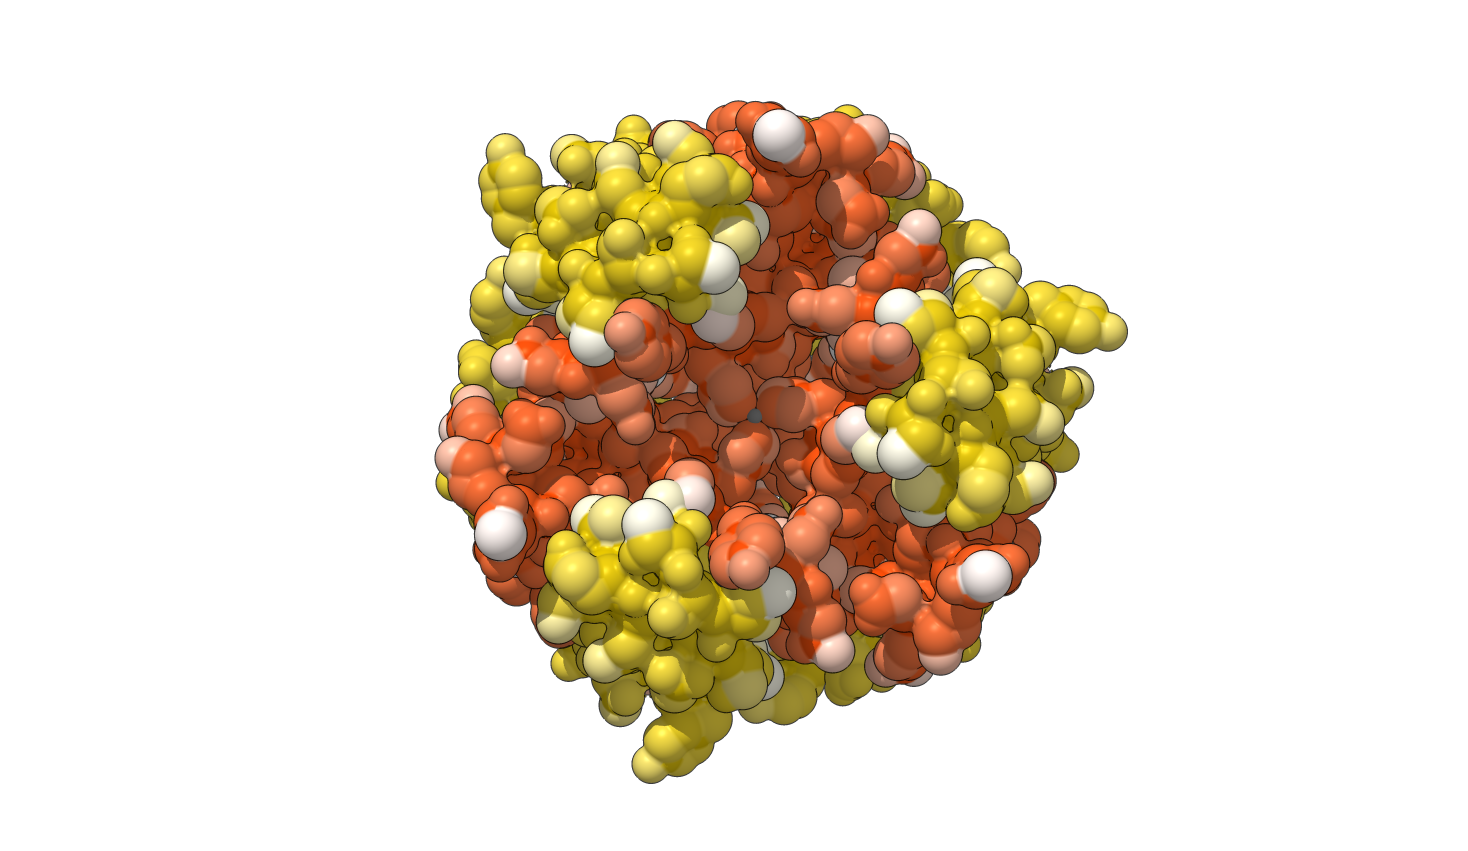 human insulin hexamer